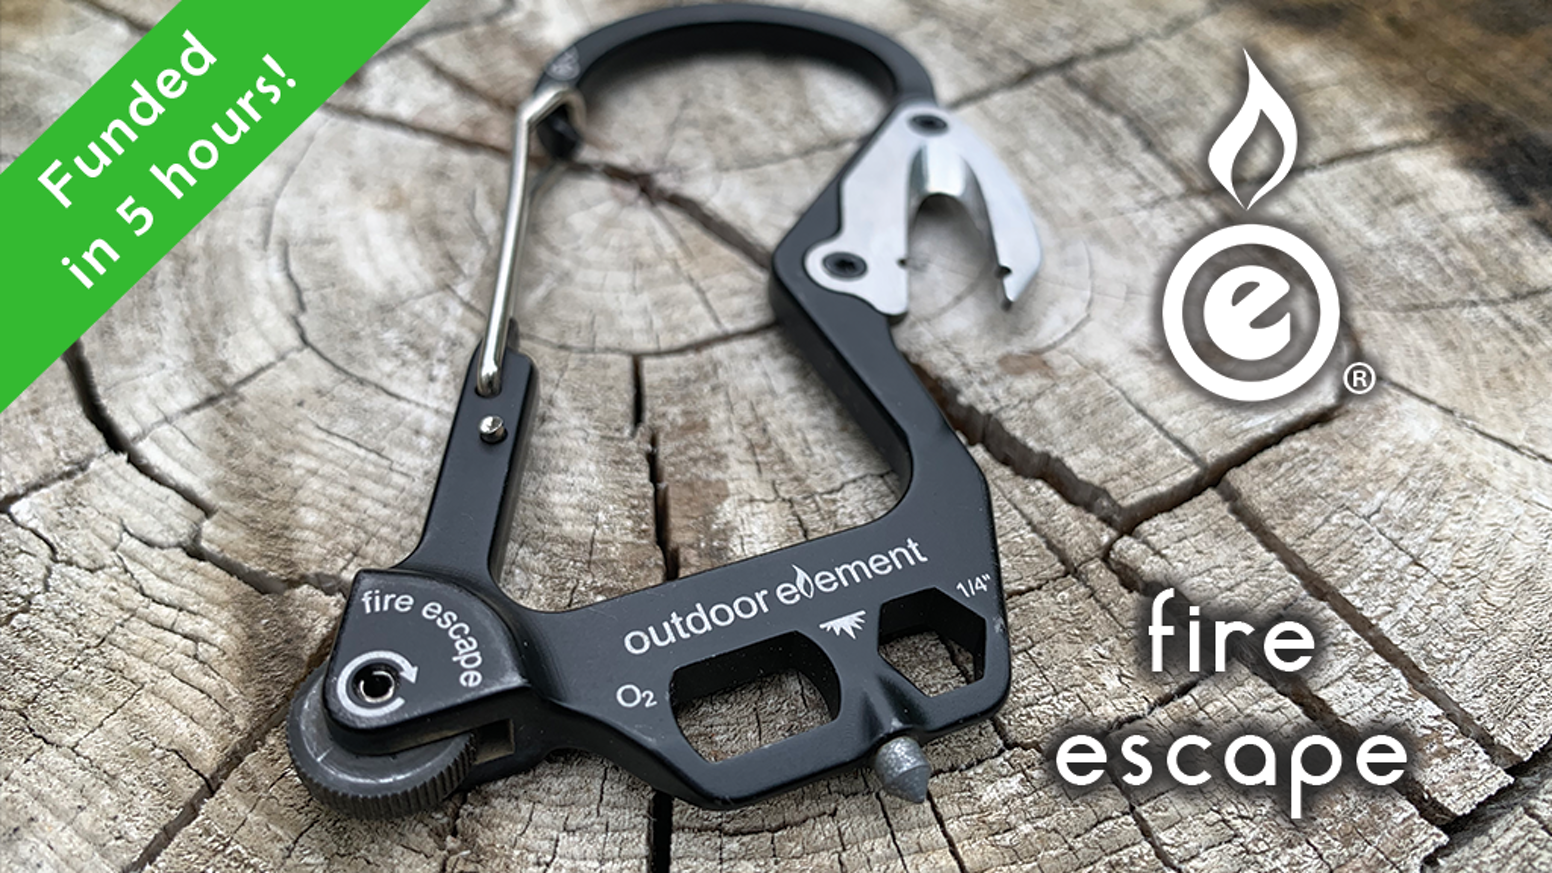 Clip it, cut it, turn it, smash it, pop it, spark it, escape it with the fire-starting multitool carabiner inspired by first-responders